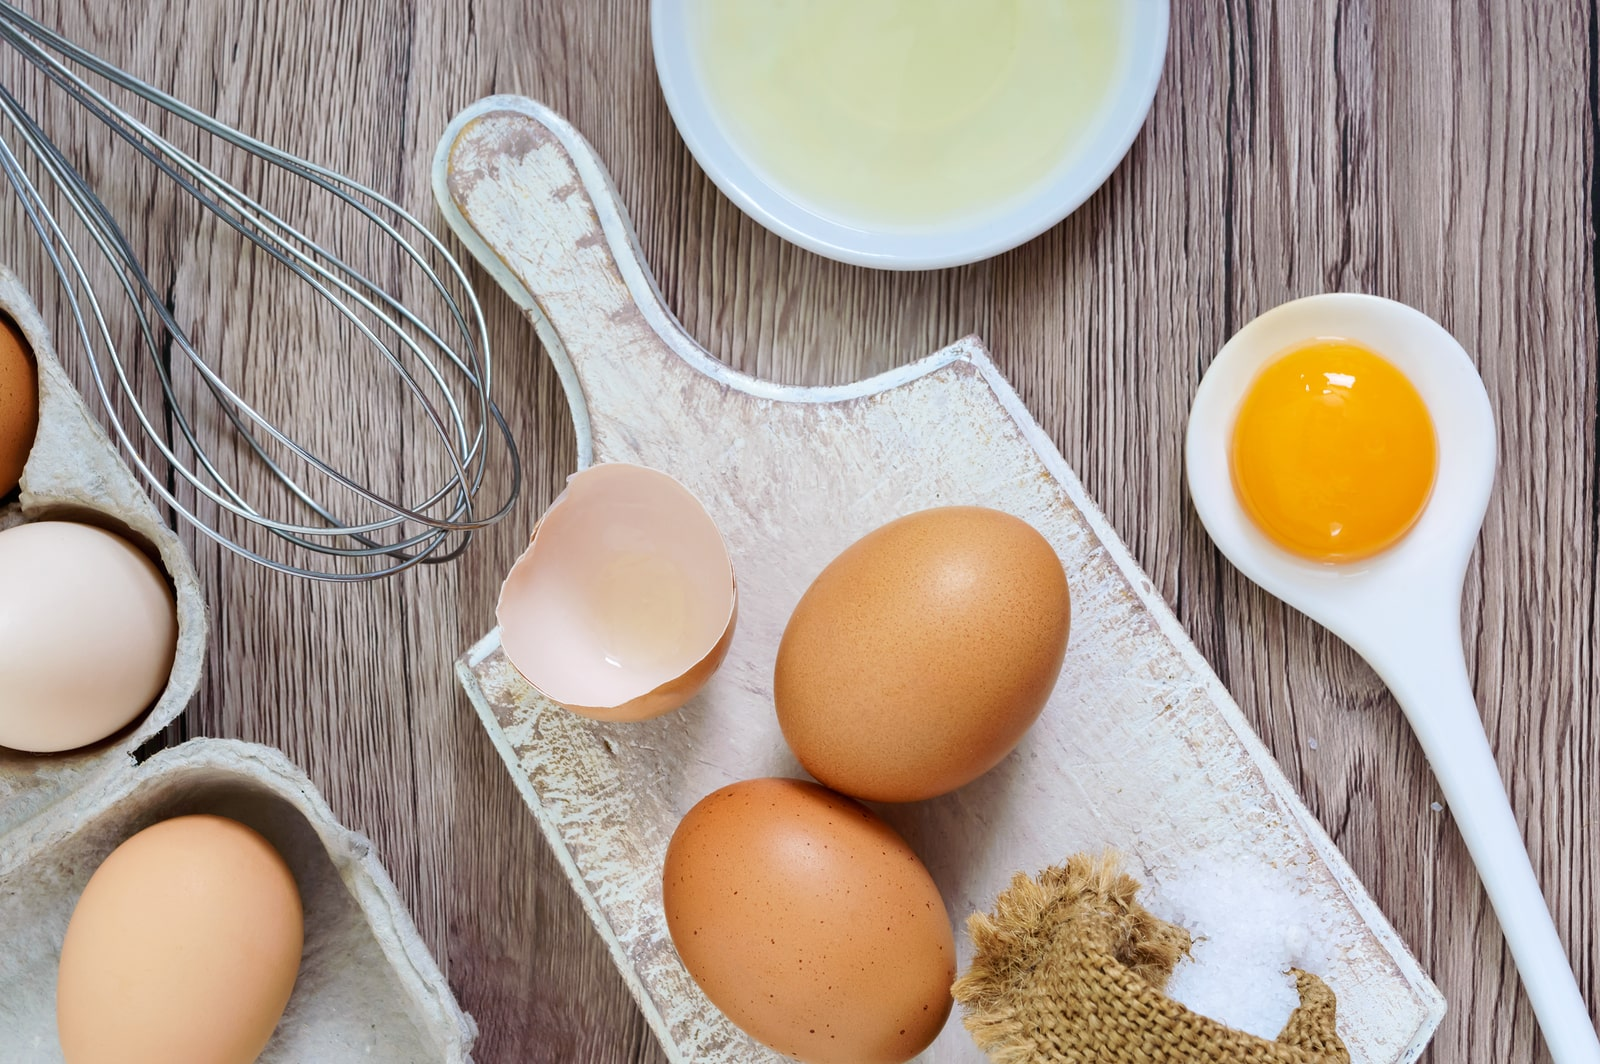 eggs are a source of riboflavin but may trigger migraines